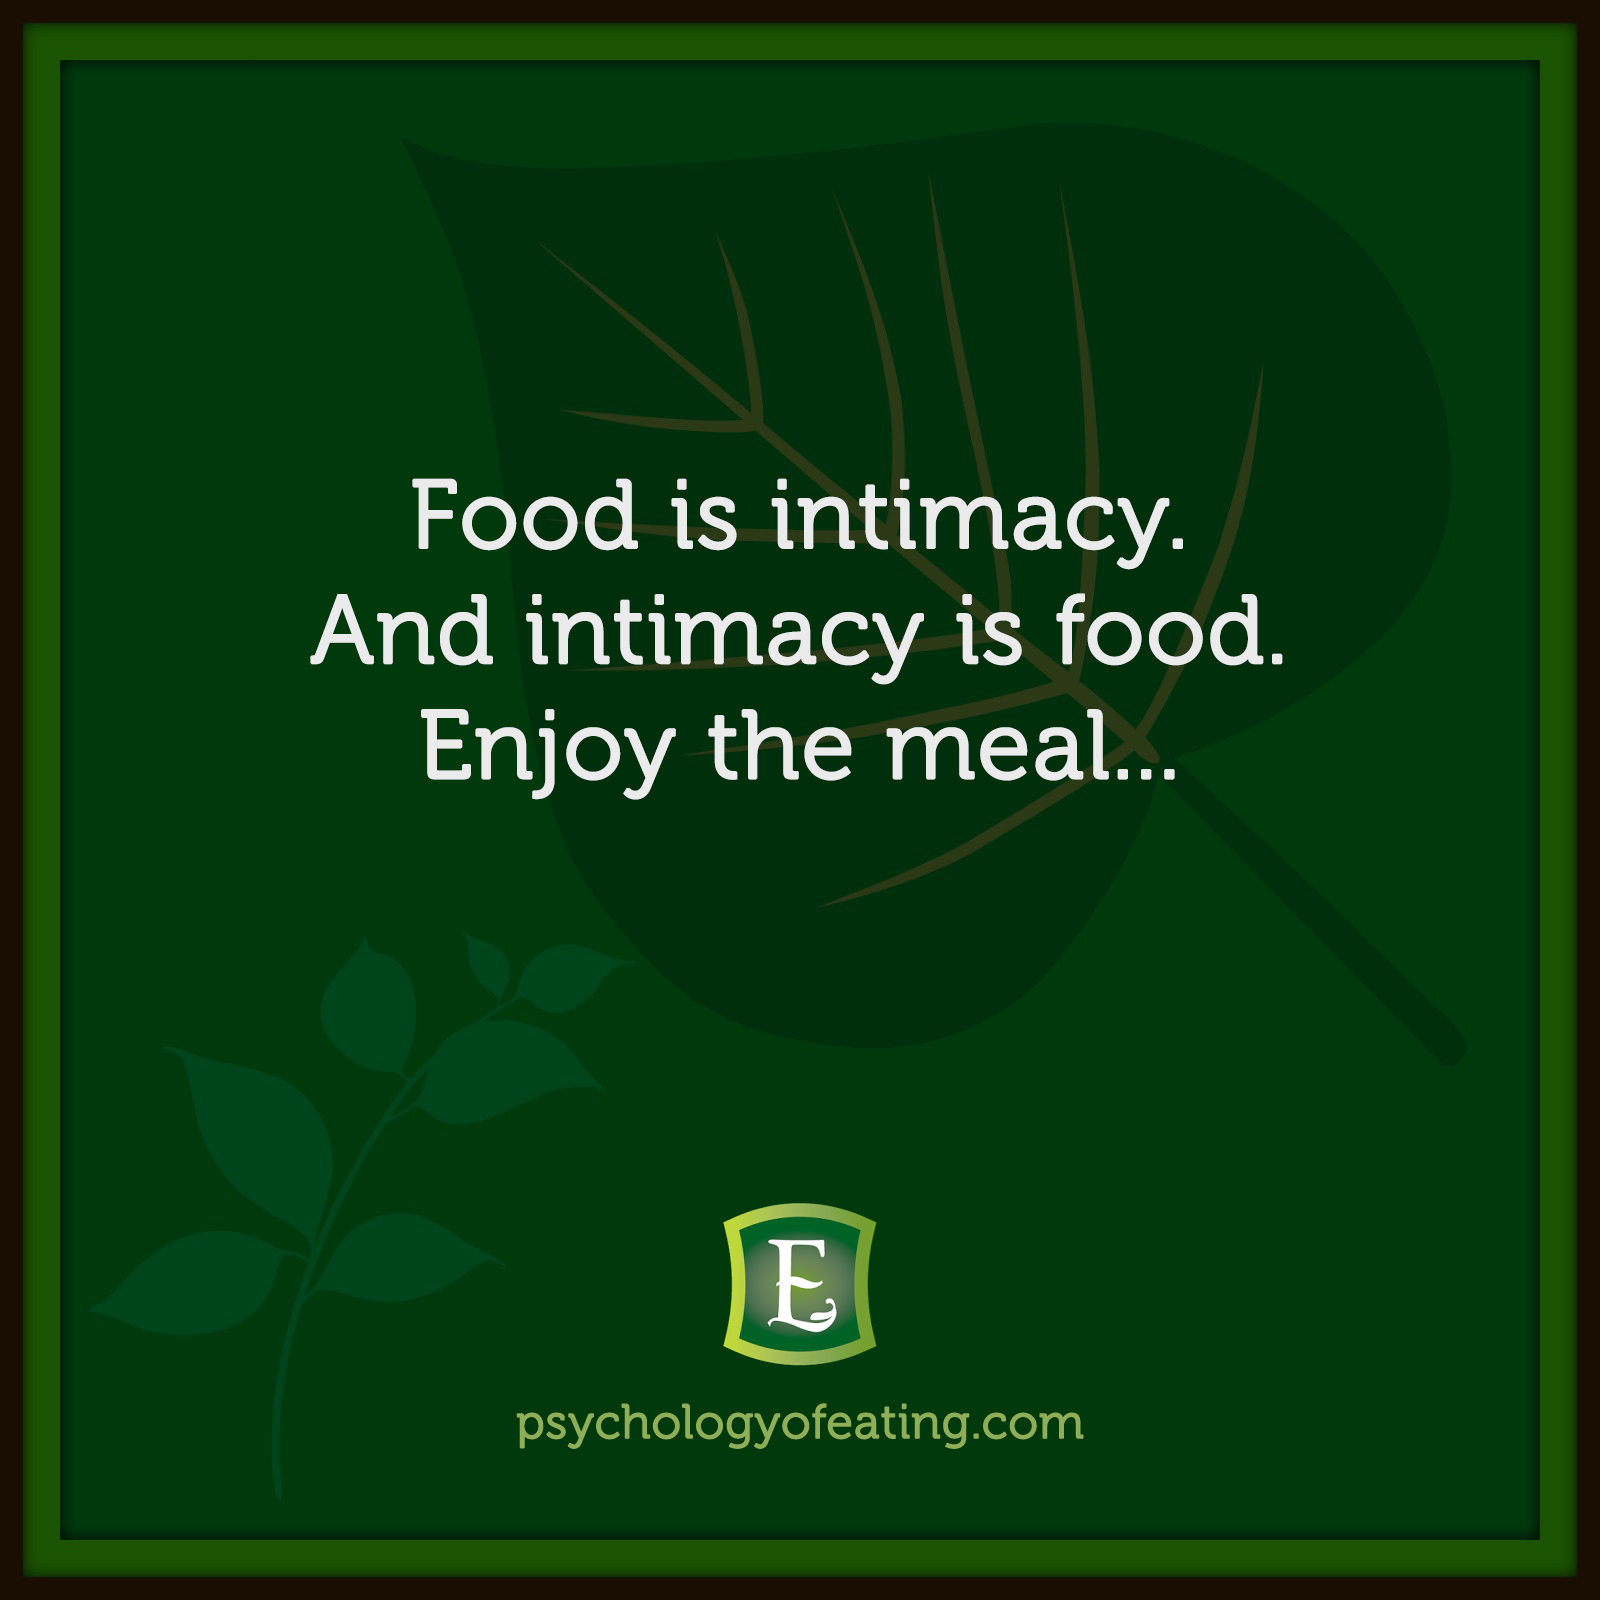 Food is intimacy. And intimacy is food. Enjoy the meal… #health #nutrition #eatingpsychology #IPE